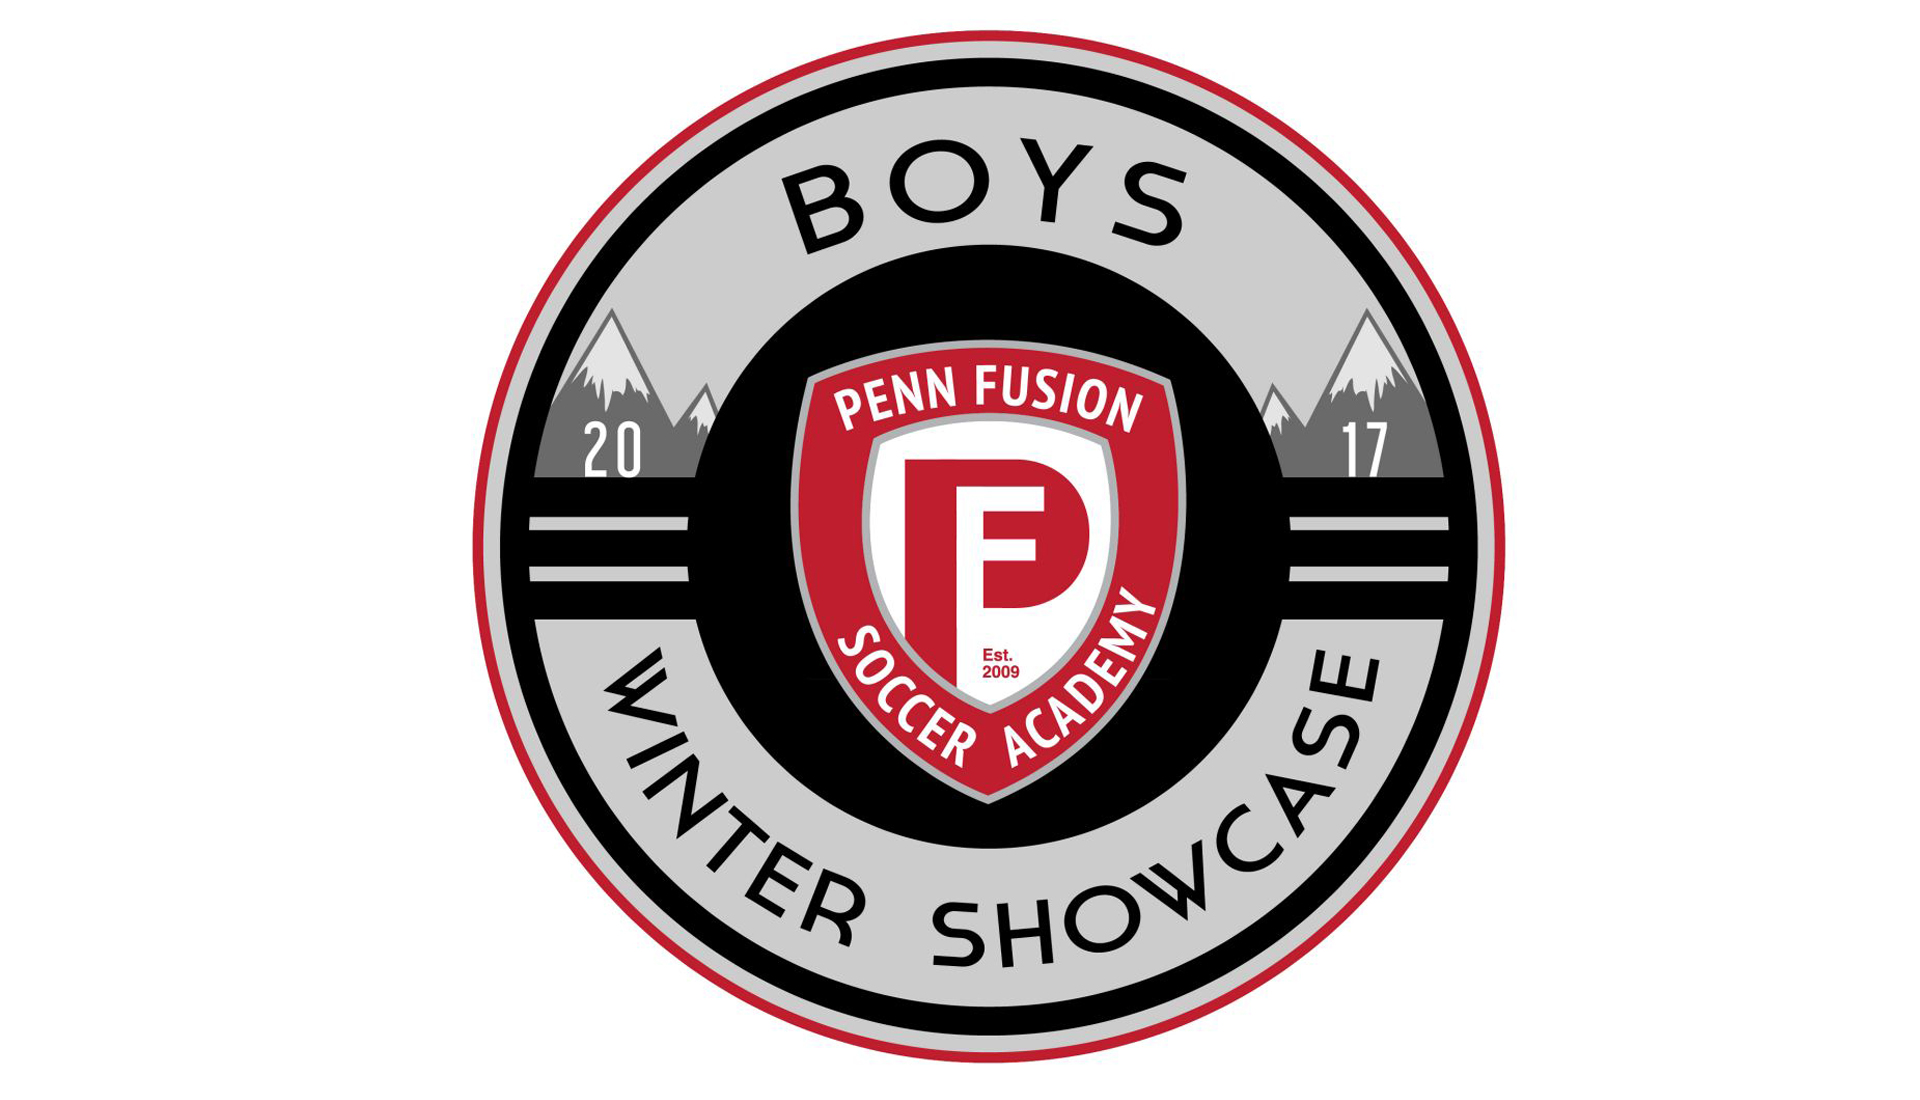 NCE-Soccer-boys-will-showcase-their-skills-in-the-Penn-Fusion-Boys-Winter-Showcase-this-weekend